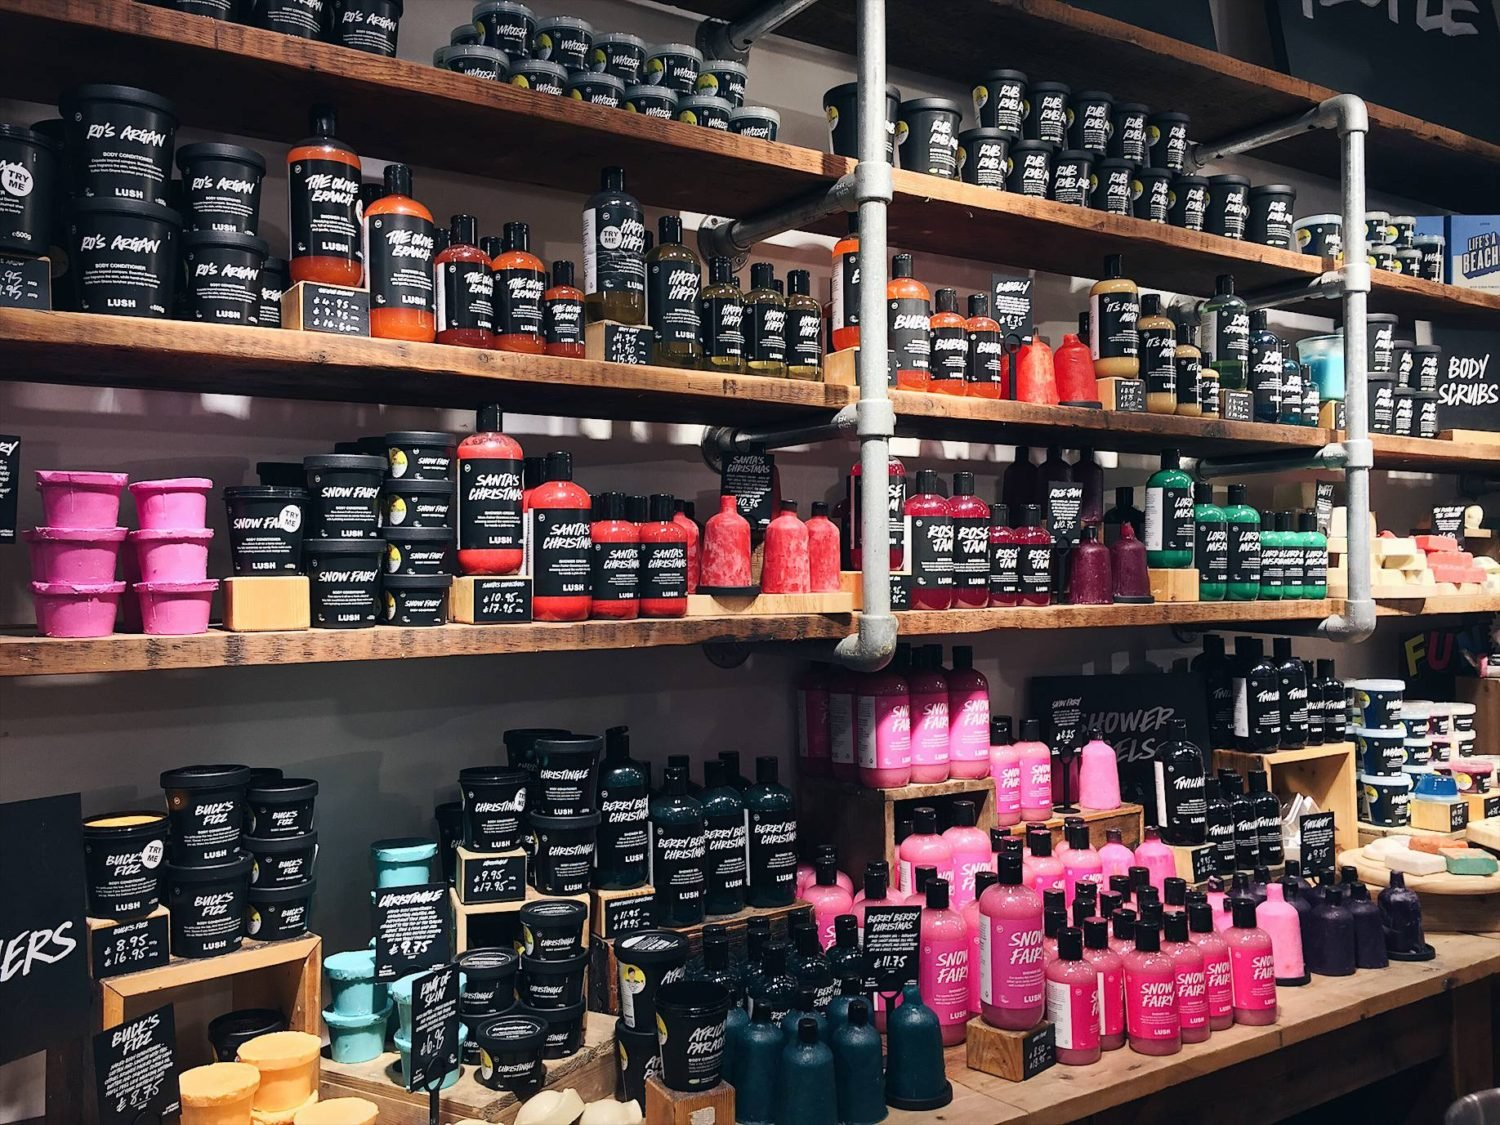 What to buy at Lush for Christmas